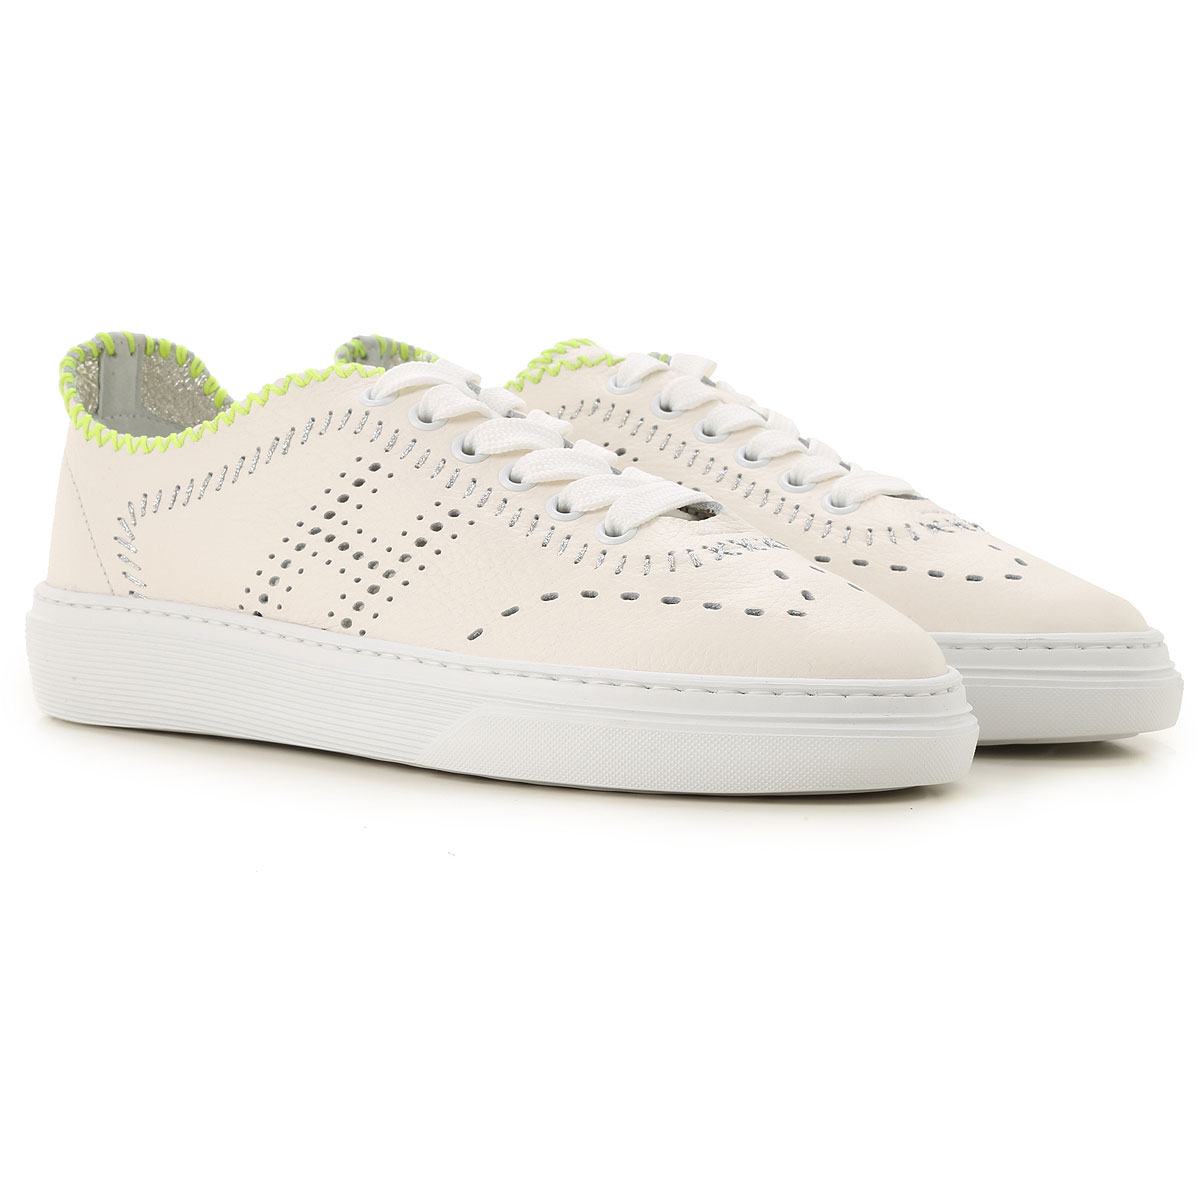 Hogan Sneakers For Women On Sale, Clay, Leather, 2019, 2.5 3.5 4 4.5 6 8.5